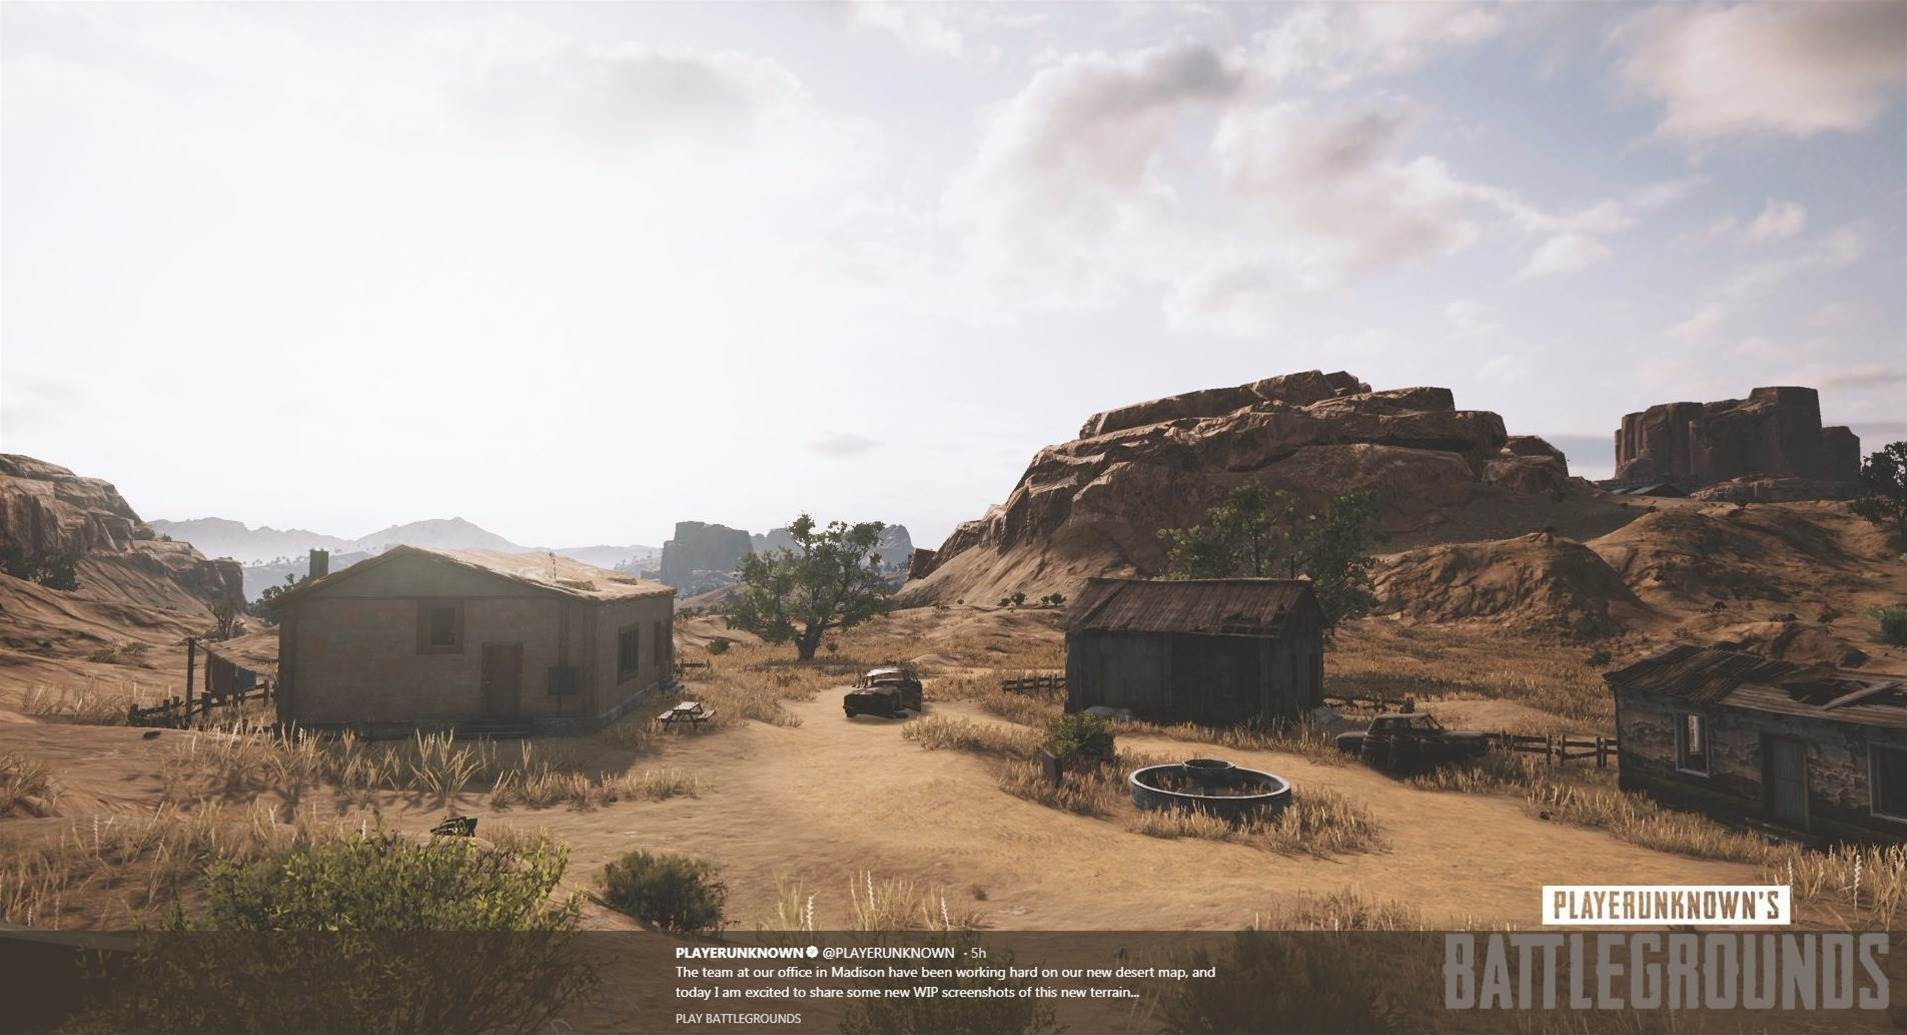 New shots of PlayerUnknown's BattleGrounds' upcoming second map